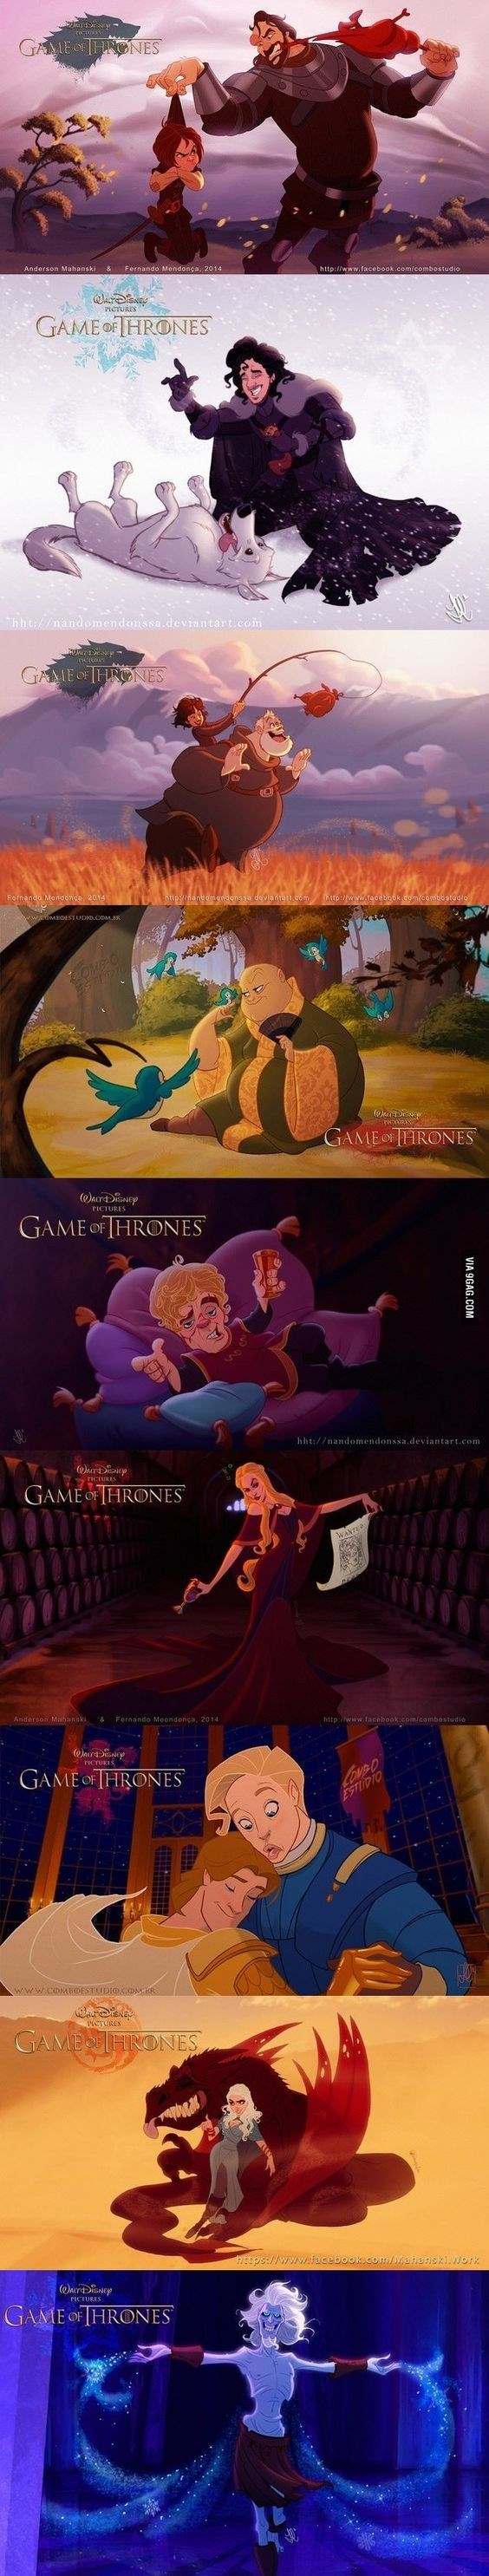 Game of Disney - Game of Thrones Characters re-imagined as Disney Characters.